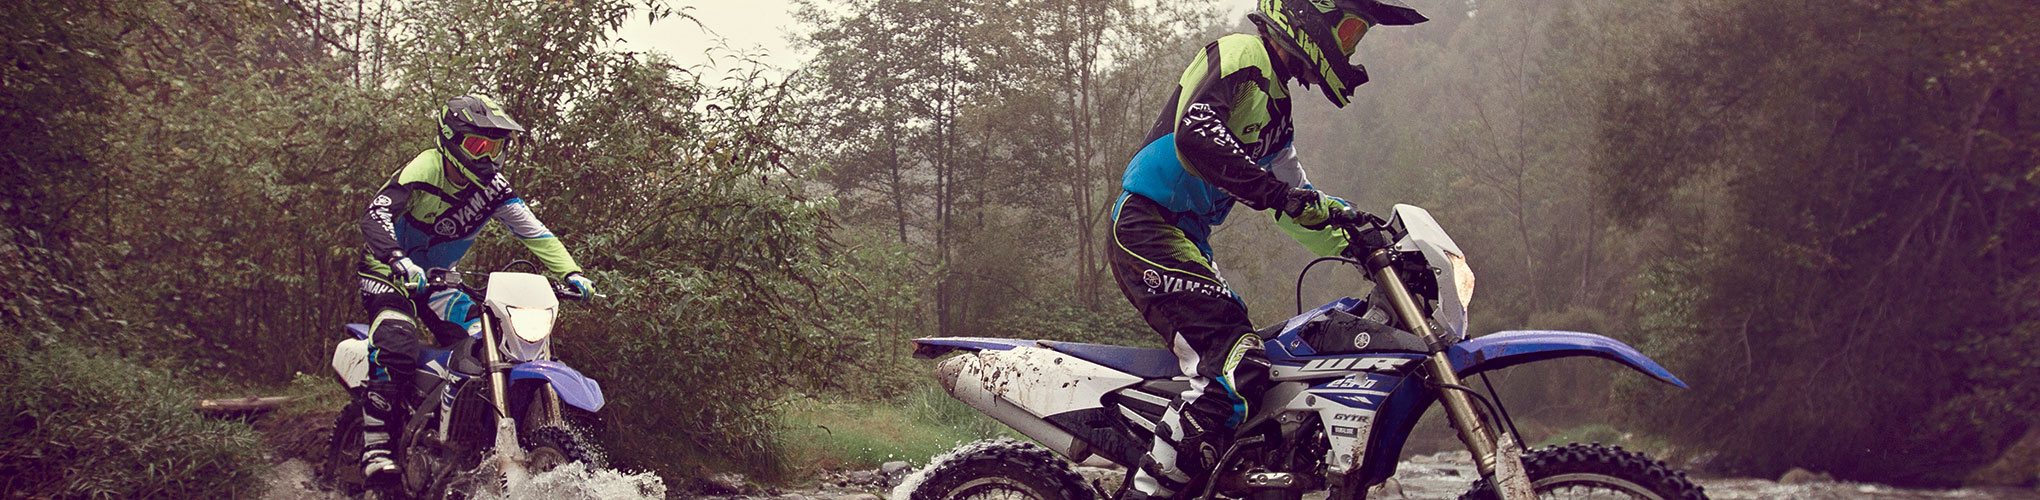 Yamaha Off Road Competition | MotorCentrumWest